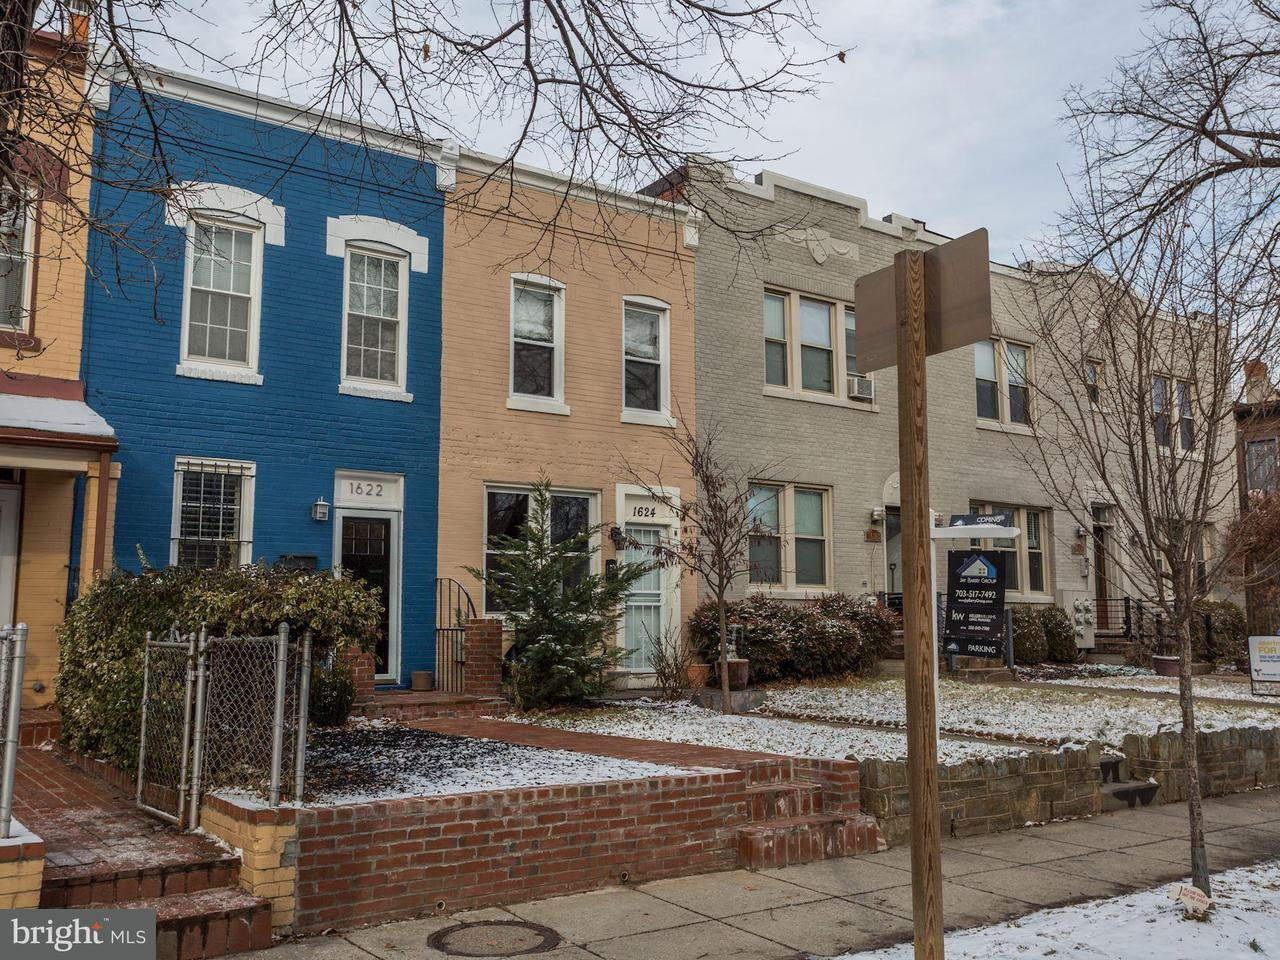 Townhouse for Sale at 1624 D ST SE 1624 D ST SE Washington, District Of Columbia 20003 United States